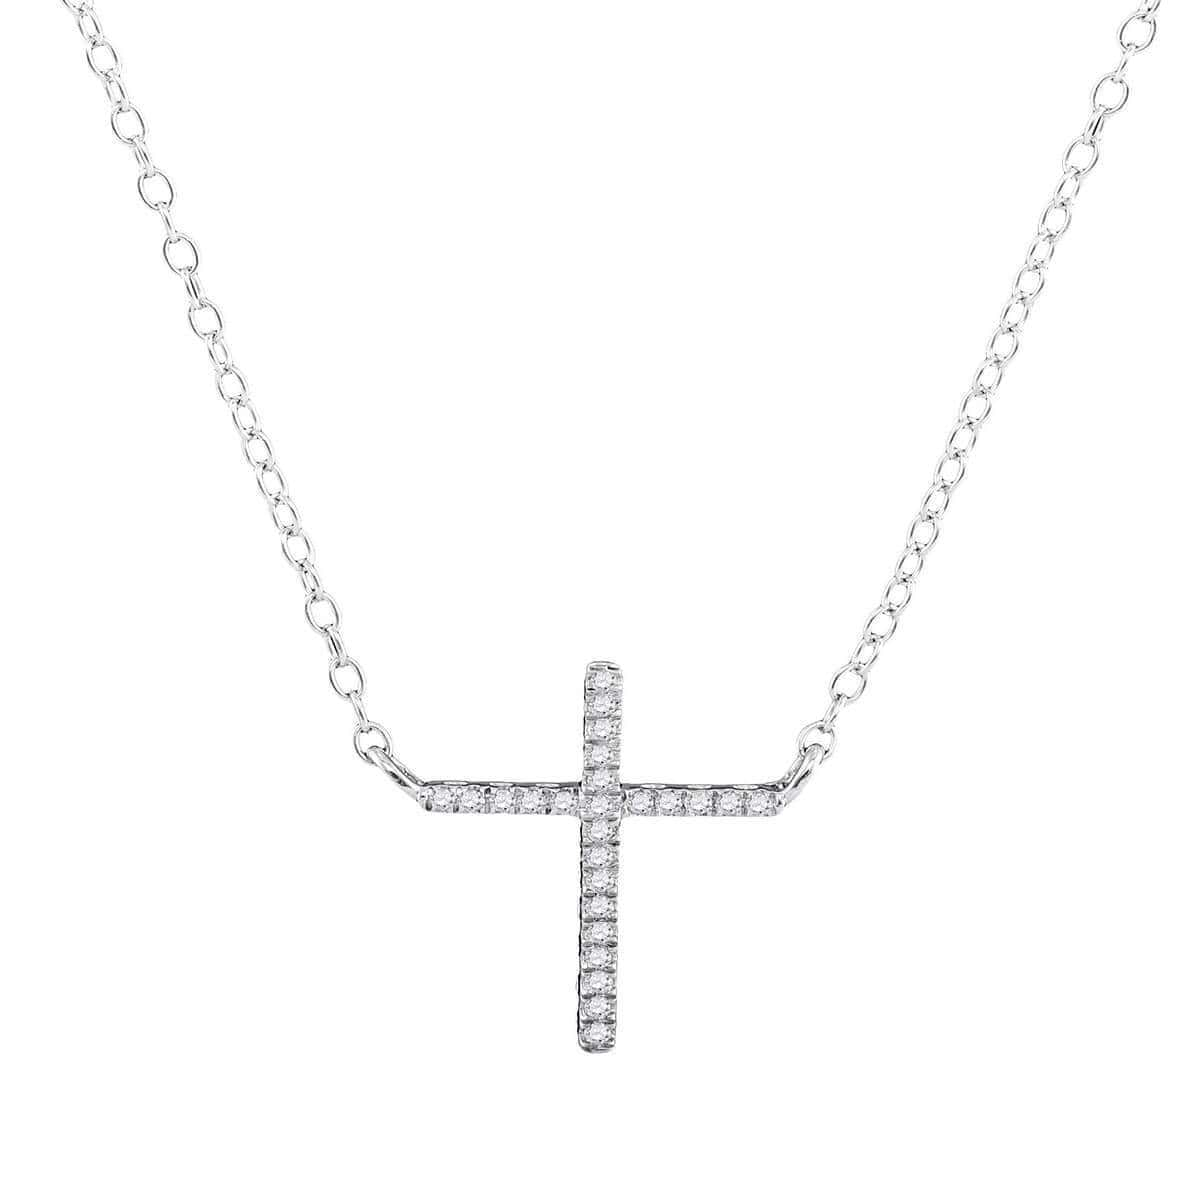 10kt White Gold Diamond Cross Necklace